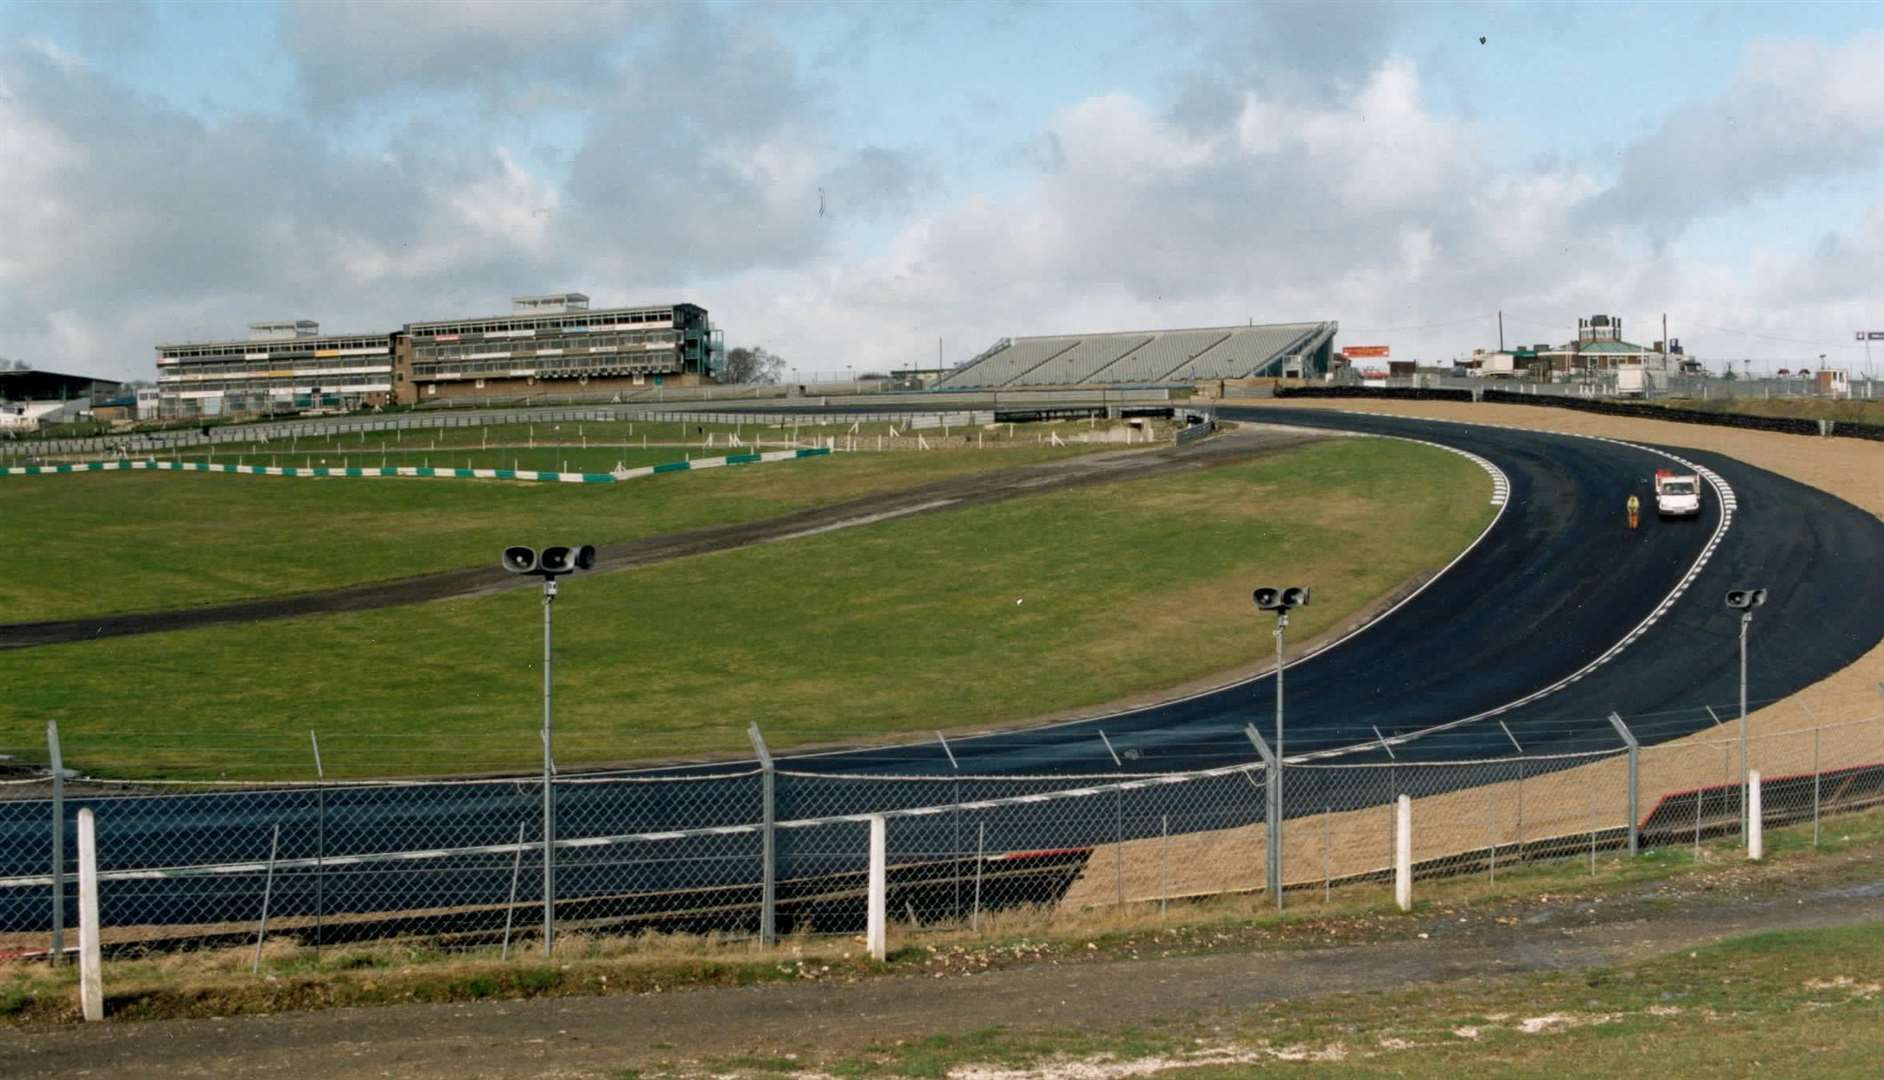 One of the world's best spectator spots - Paddock Hill Bend at Brands Hatch in February 1997